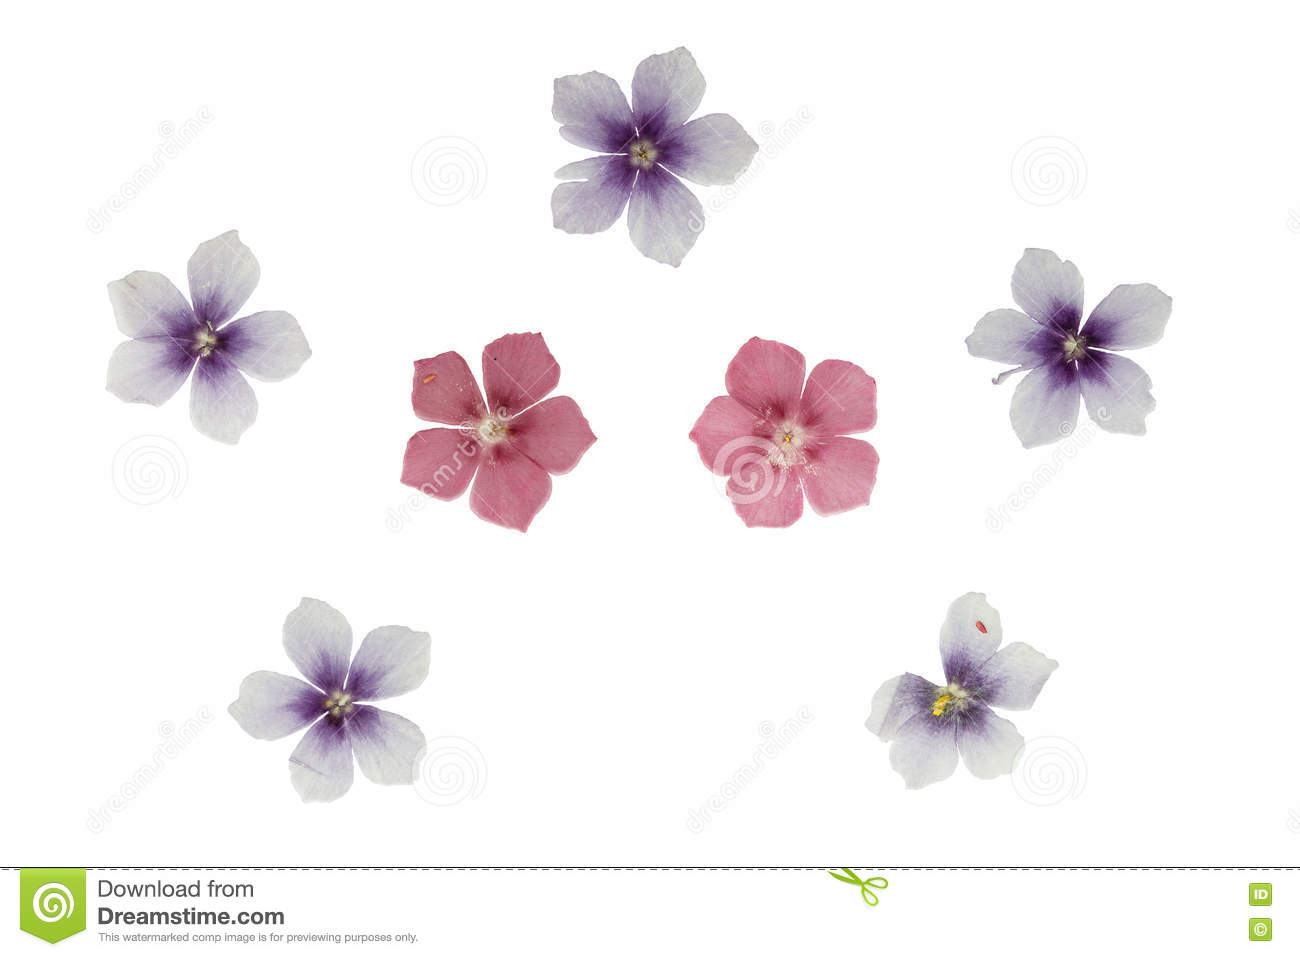 How to scrapbook dried flowers - Set Of Pressed And Dried Flowers Blue Pink Phlox Isolated